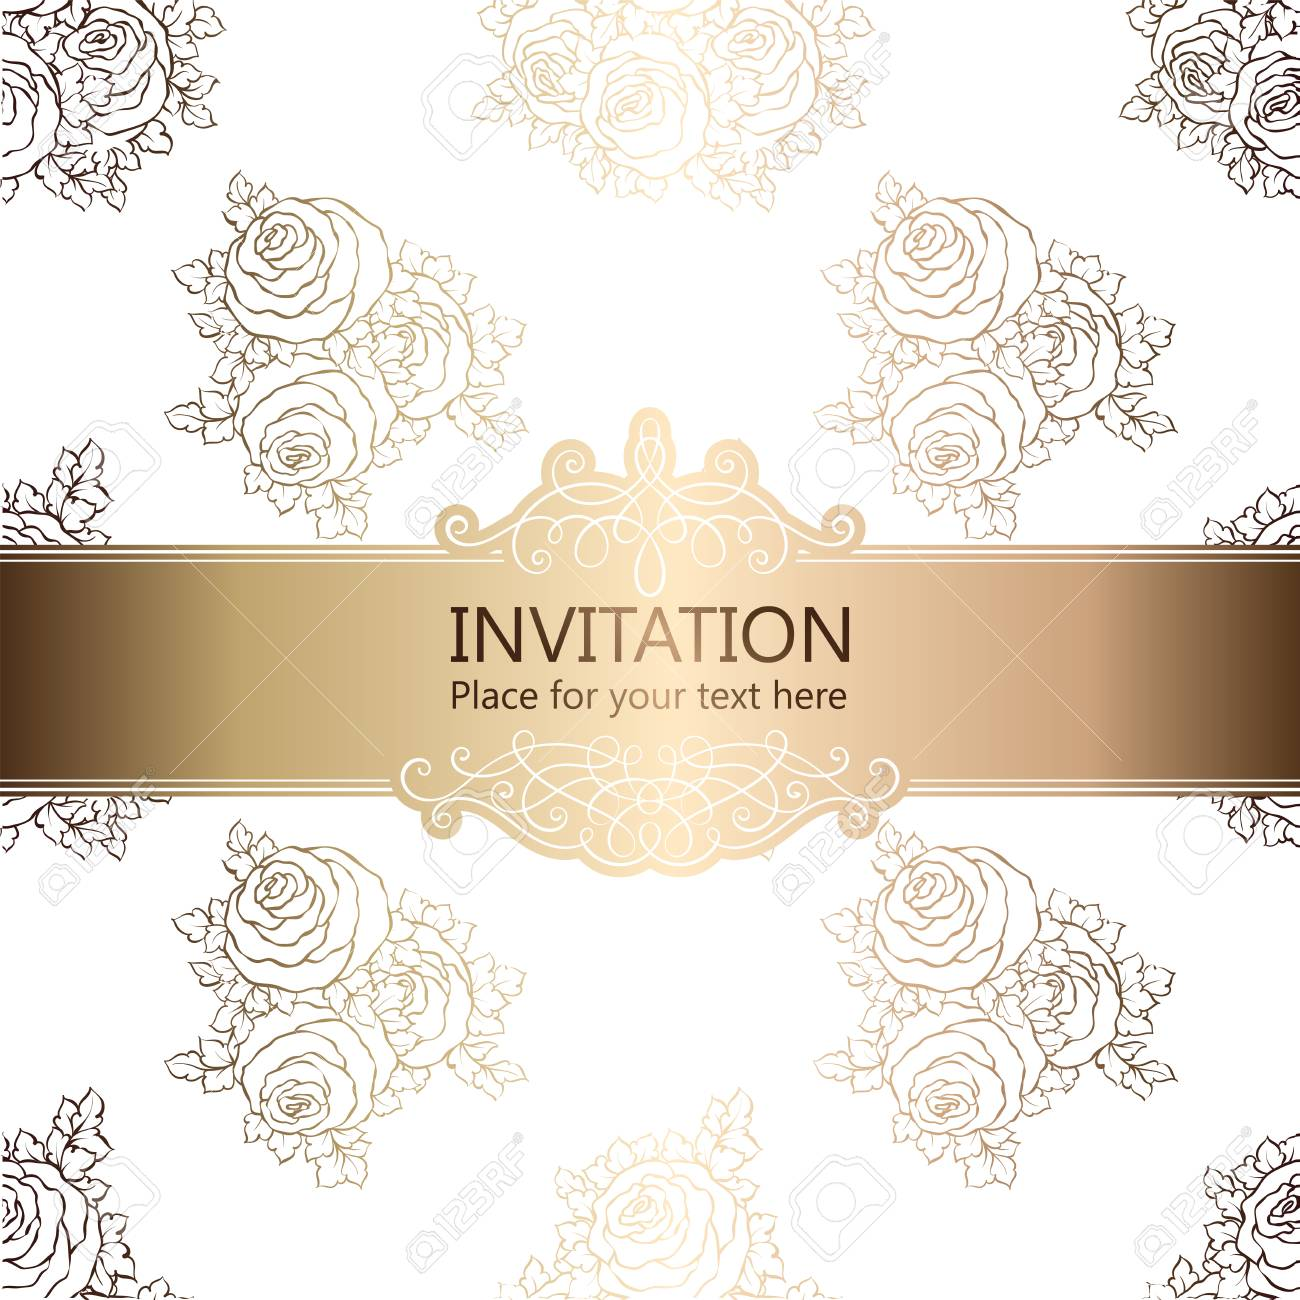 Abstract Background With Roses Luxury White And Gold Vintage Frame Victorian Banner Damask Floral Wallpaper Ornaments Invitation Card Baroque